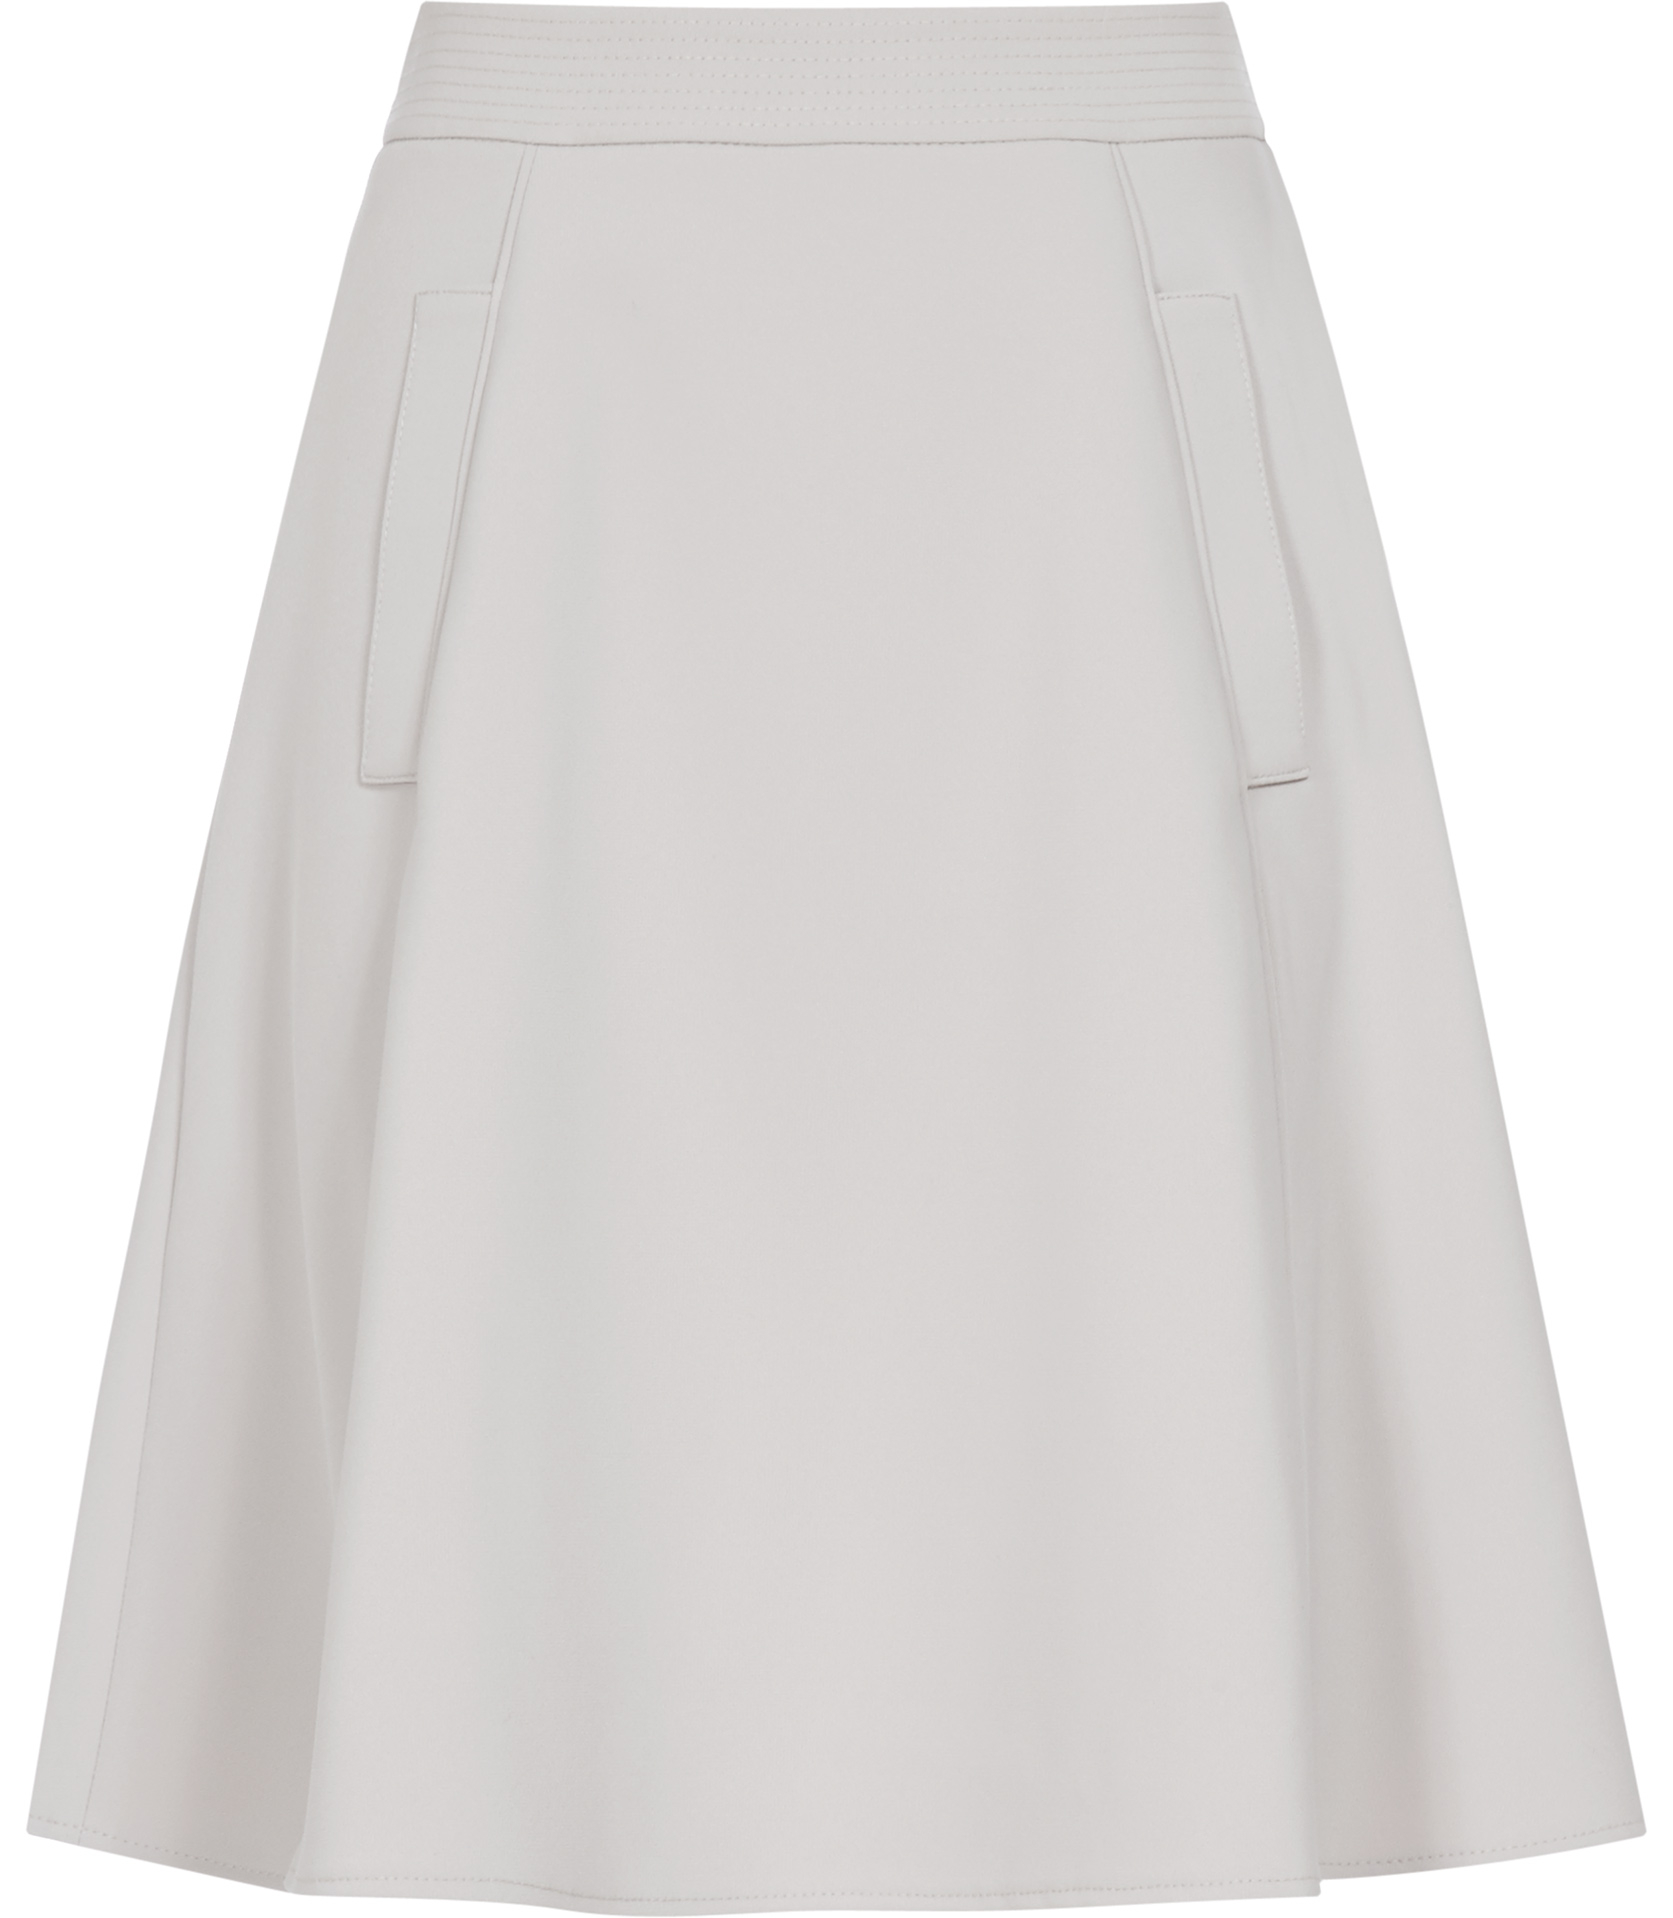 Grey A Line Skirt - Dress Ala